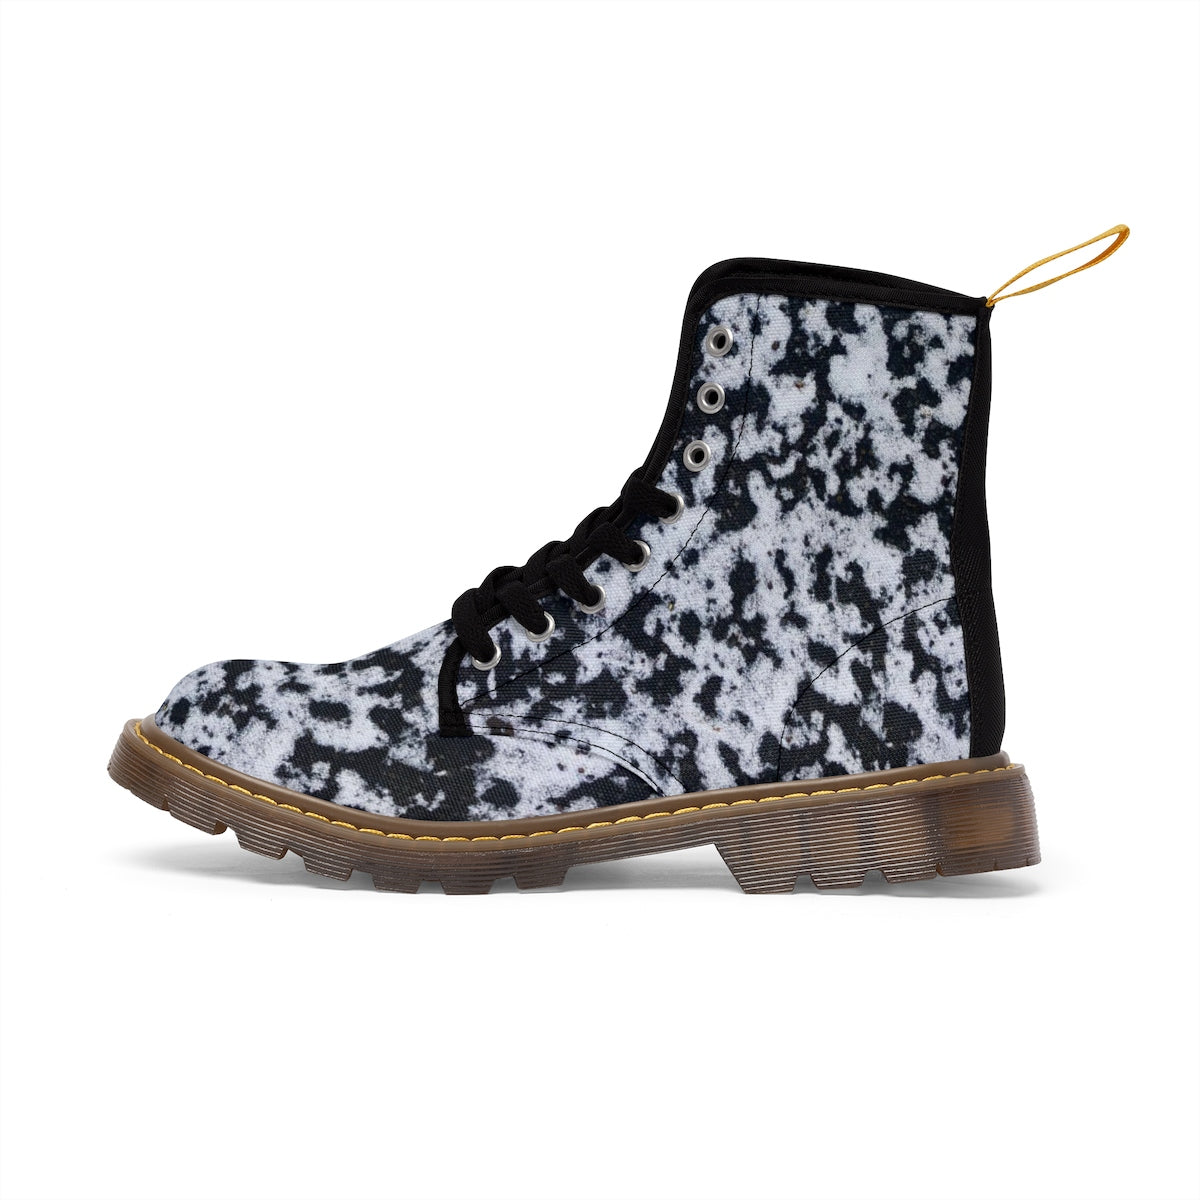 Snowed Men's Canvas Boots